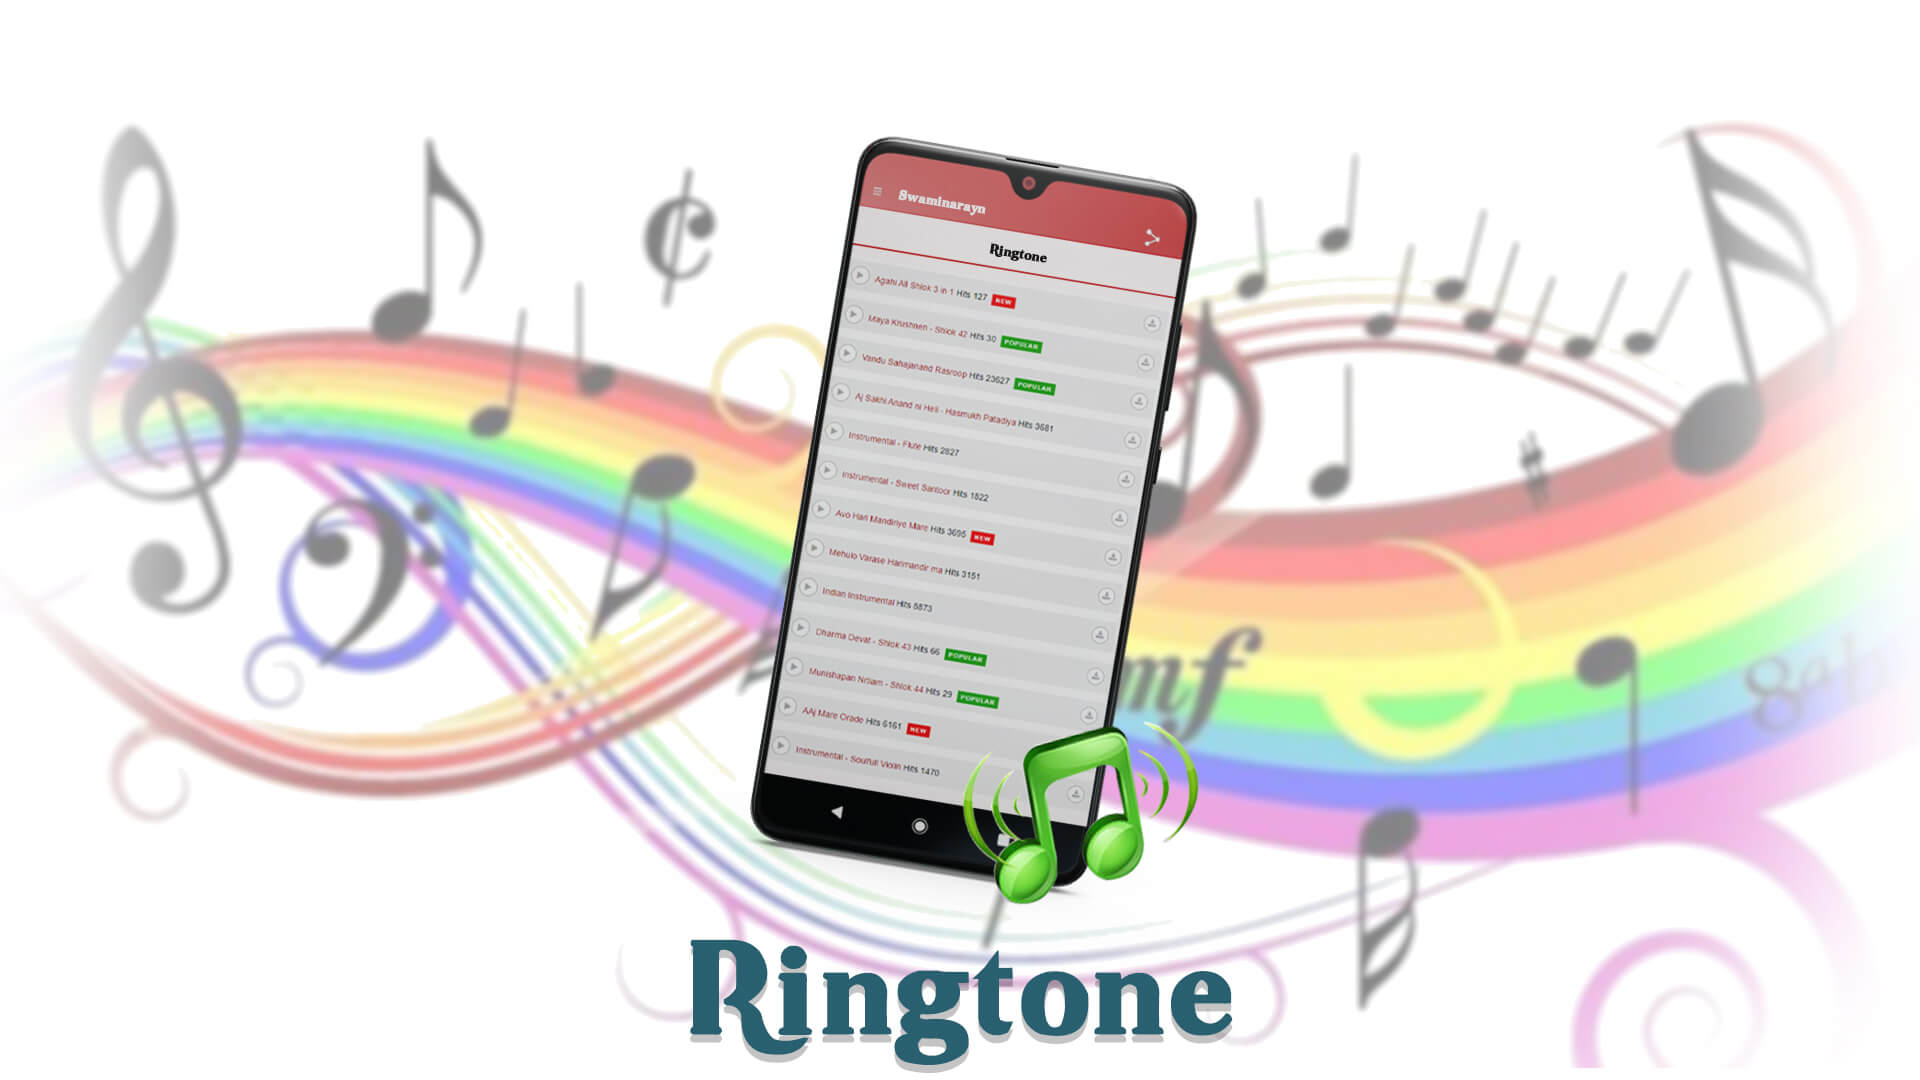 Jio ke phone mein naam ki ringtone kaise download kare